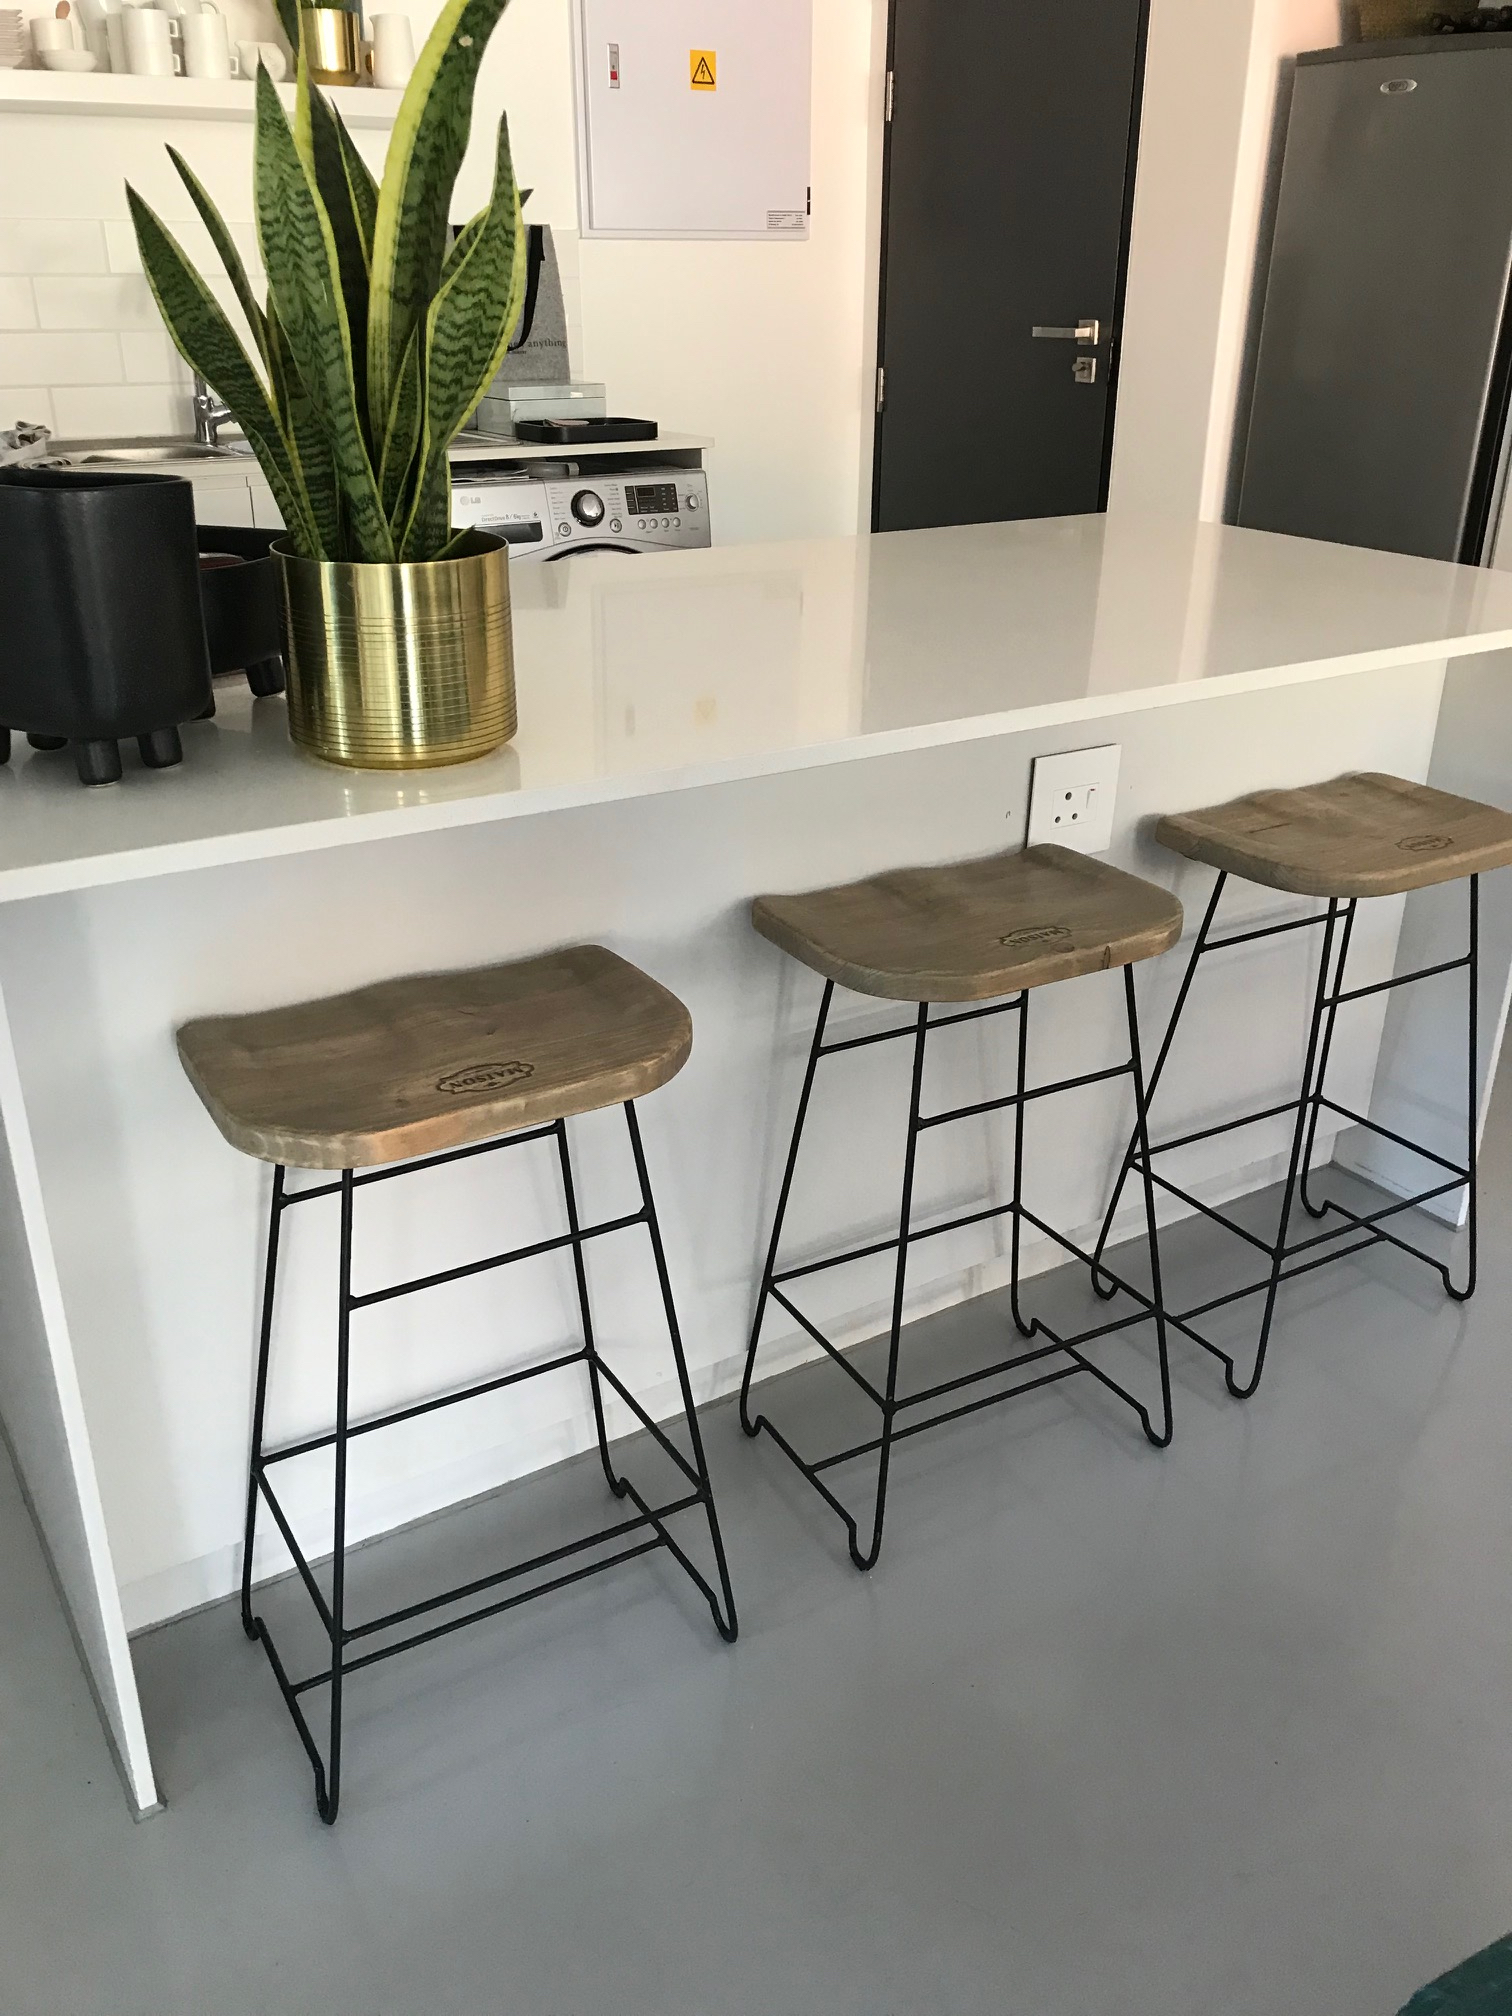 Steel and wood bar stools